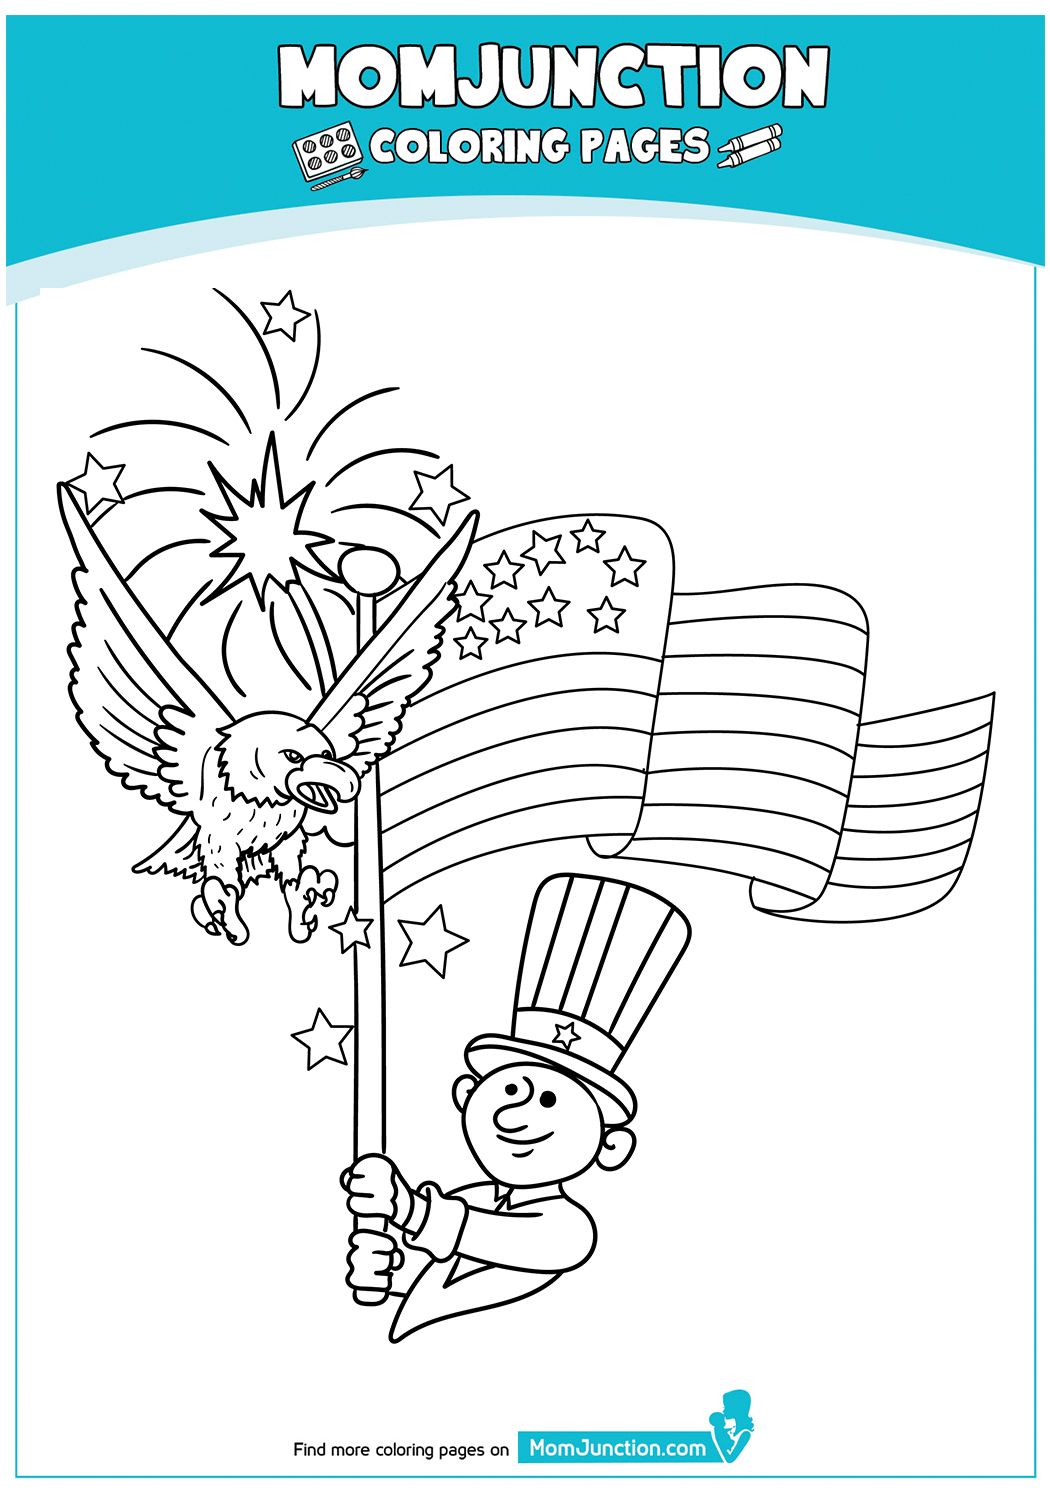 Independence Day 4th July 17 Coloring Pages Coloring Pages For Kids Felt Pattern [ 1500 x 1050 Pixel ]